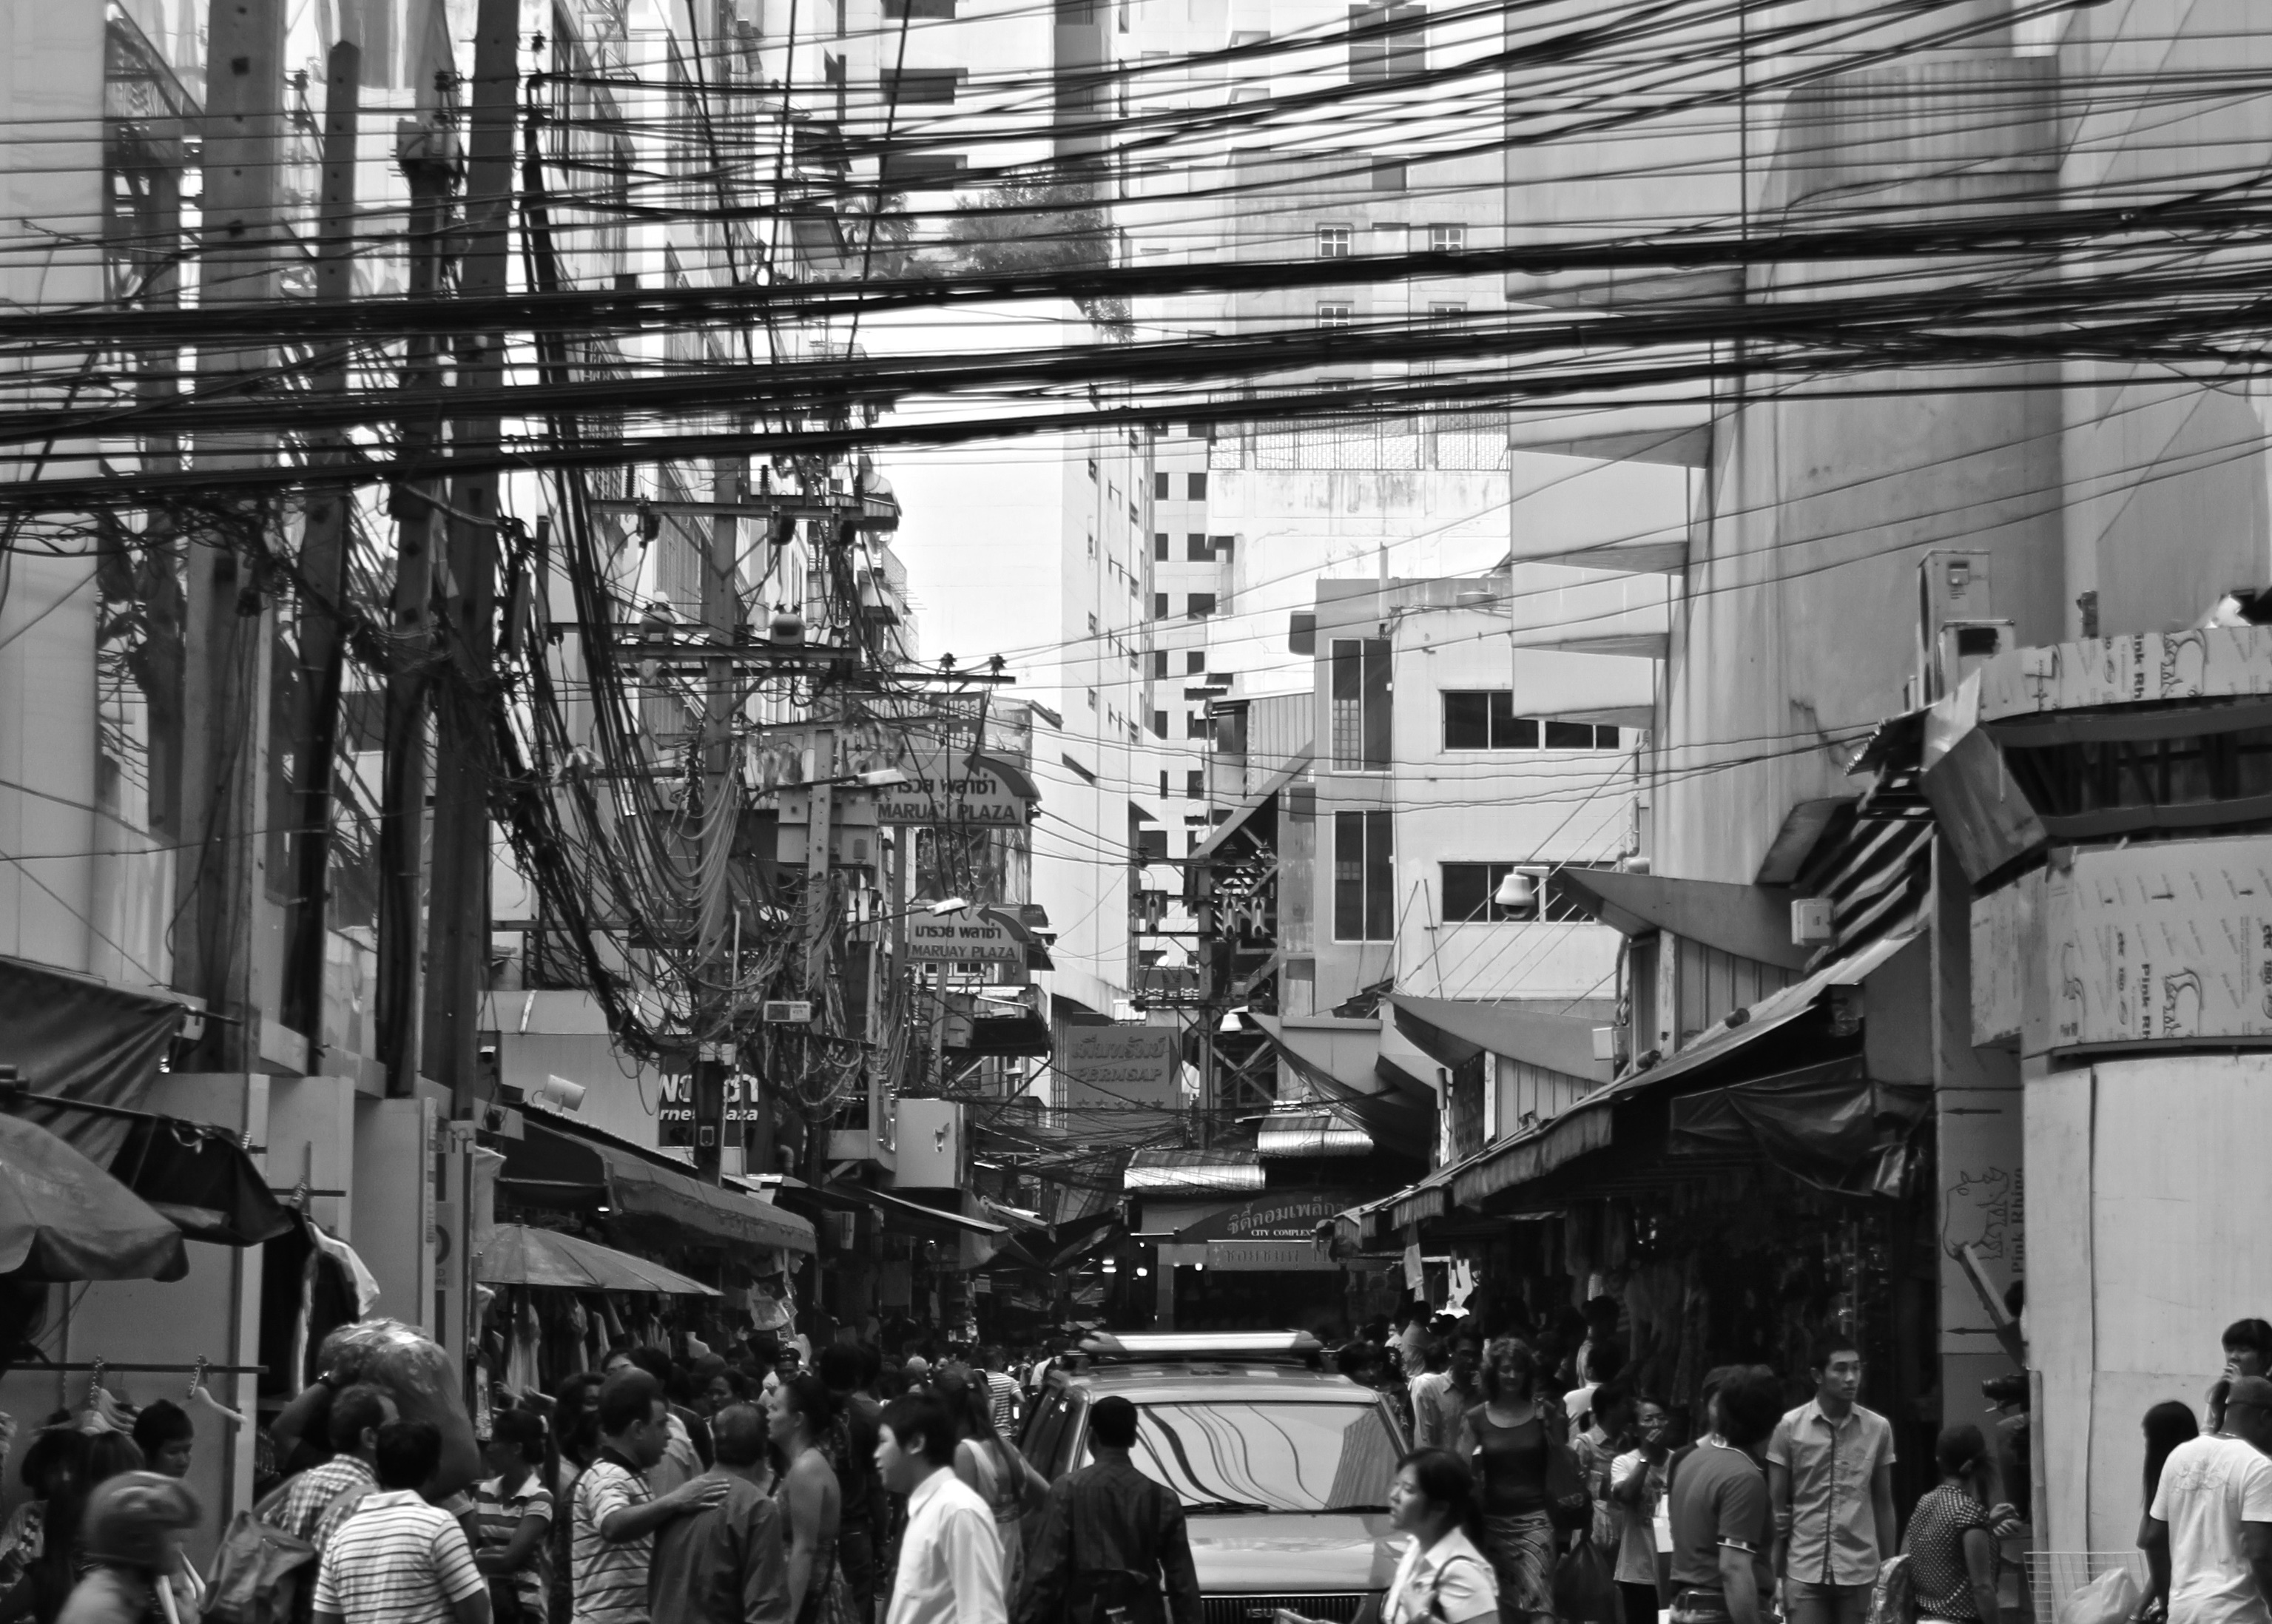 People on the street, china, people, crowd, busy, streets, city, pedestrians, buildings, architecture, black and white